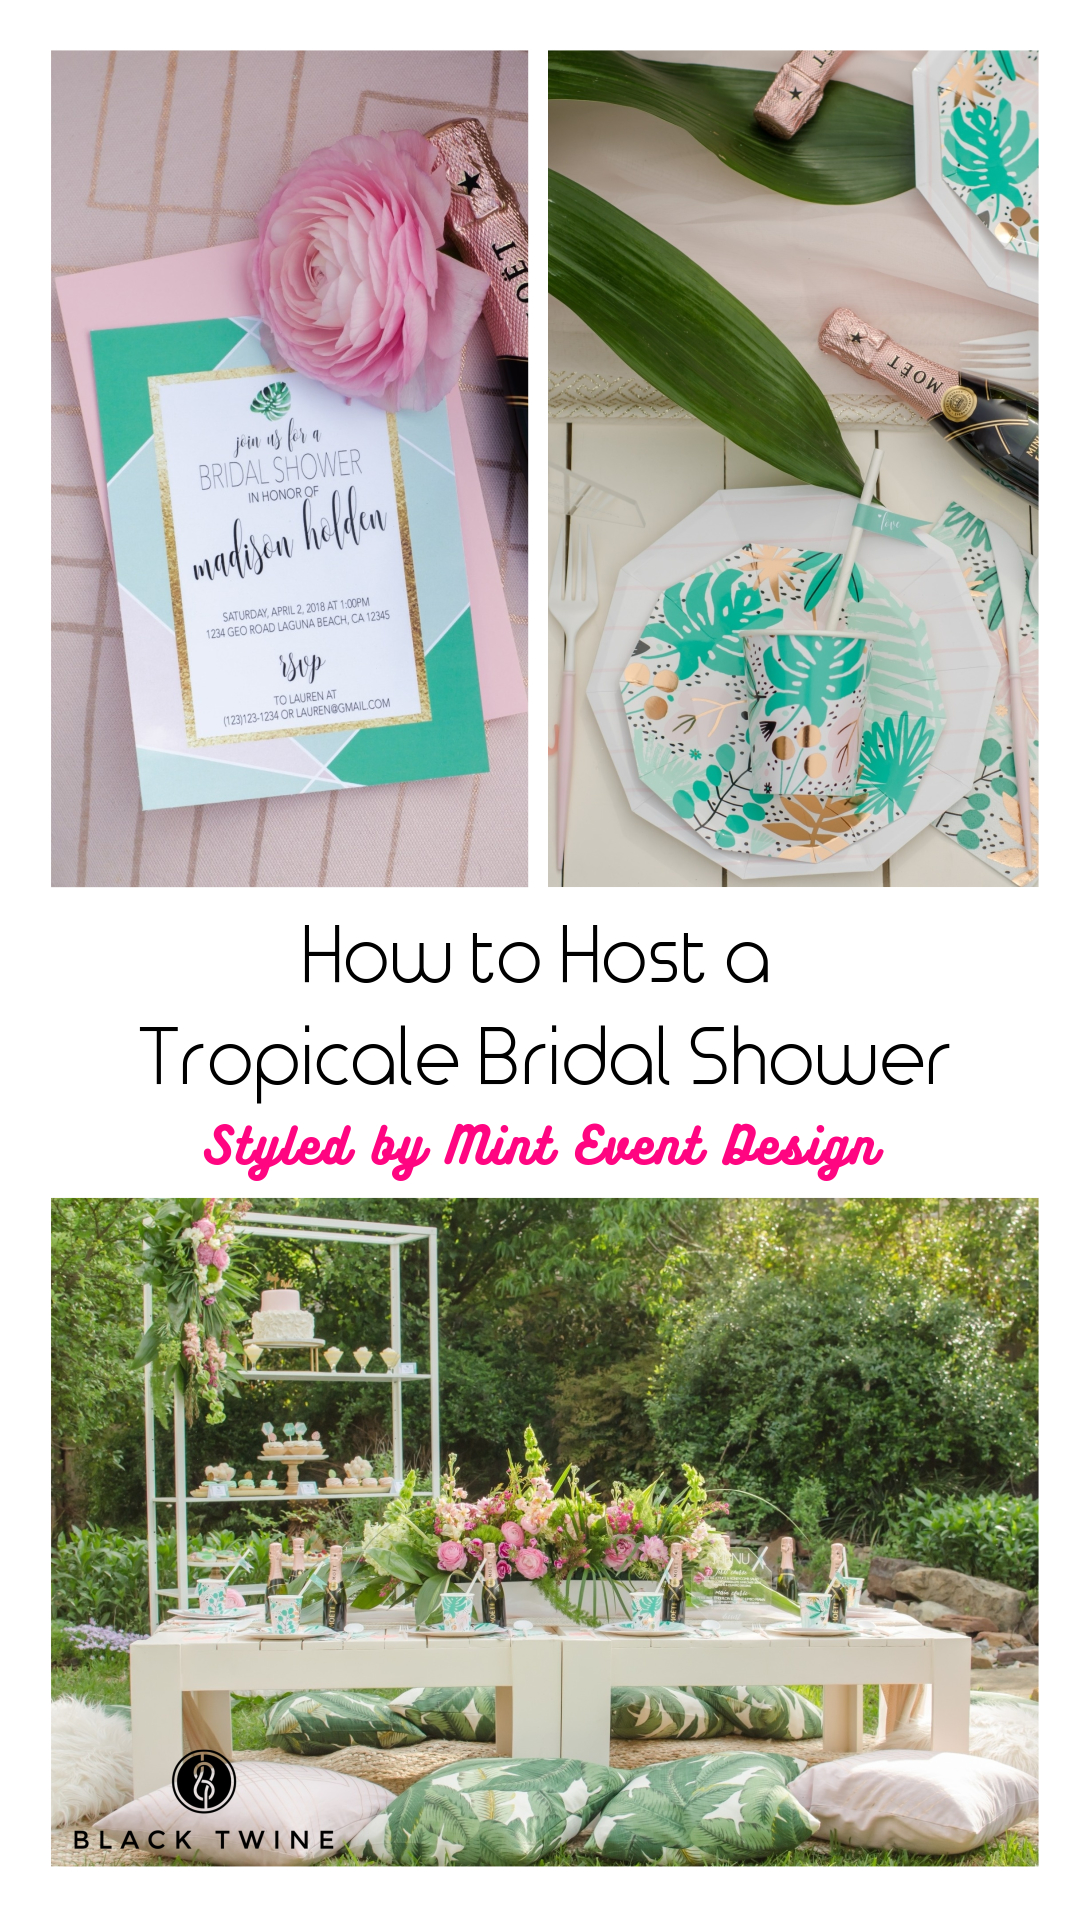 How to Host a Tropicale Bridal Shower Featuring Daydream Society | Styled by Mint Event Design | Black Twine